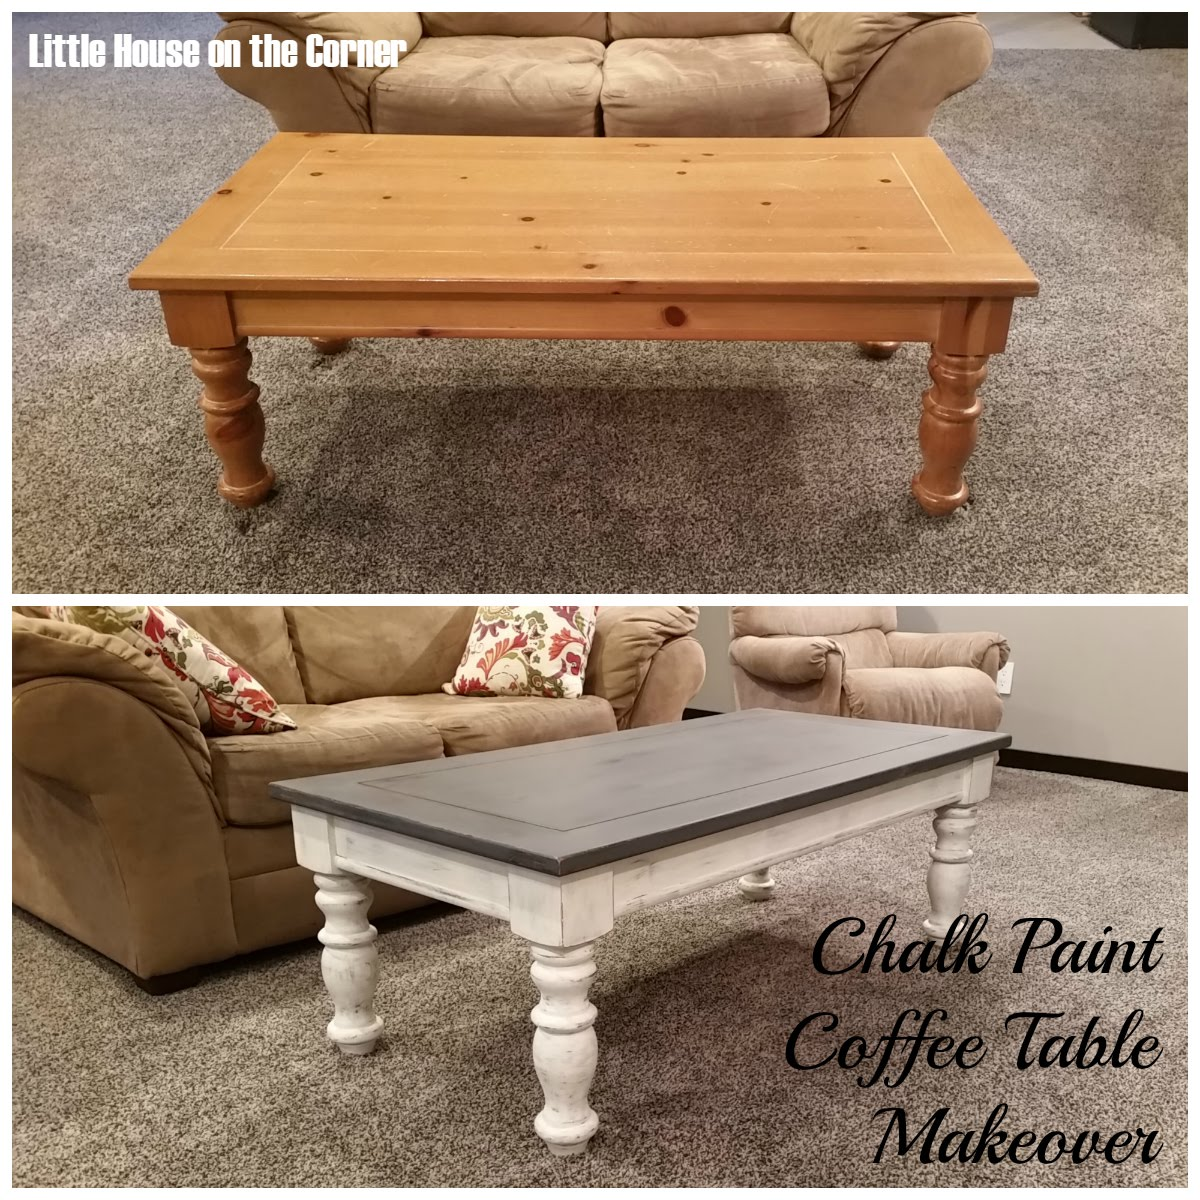 Little house on the corner chalk paint coffee table makeover for Painted coffee table ideas